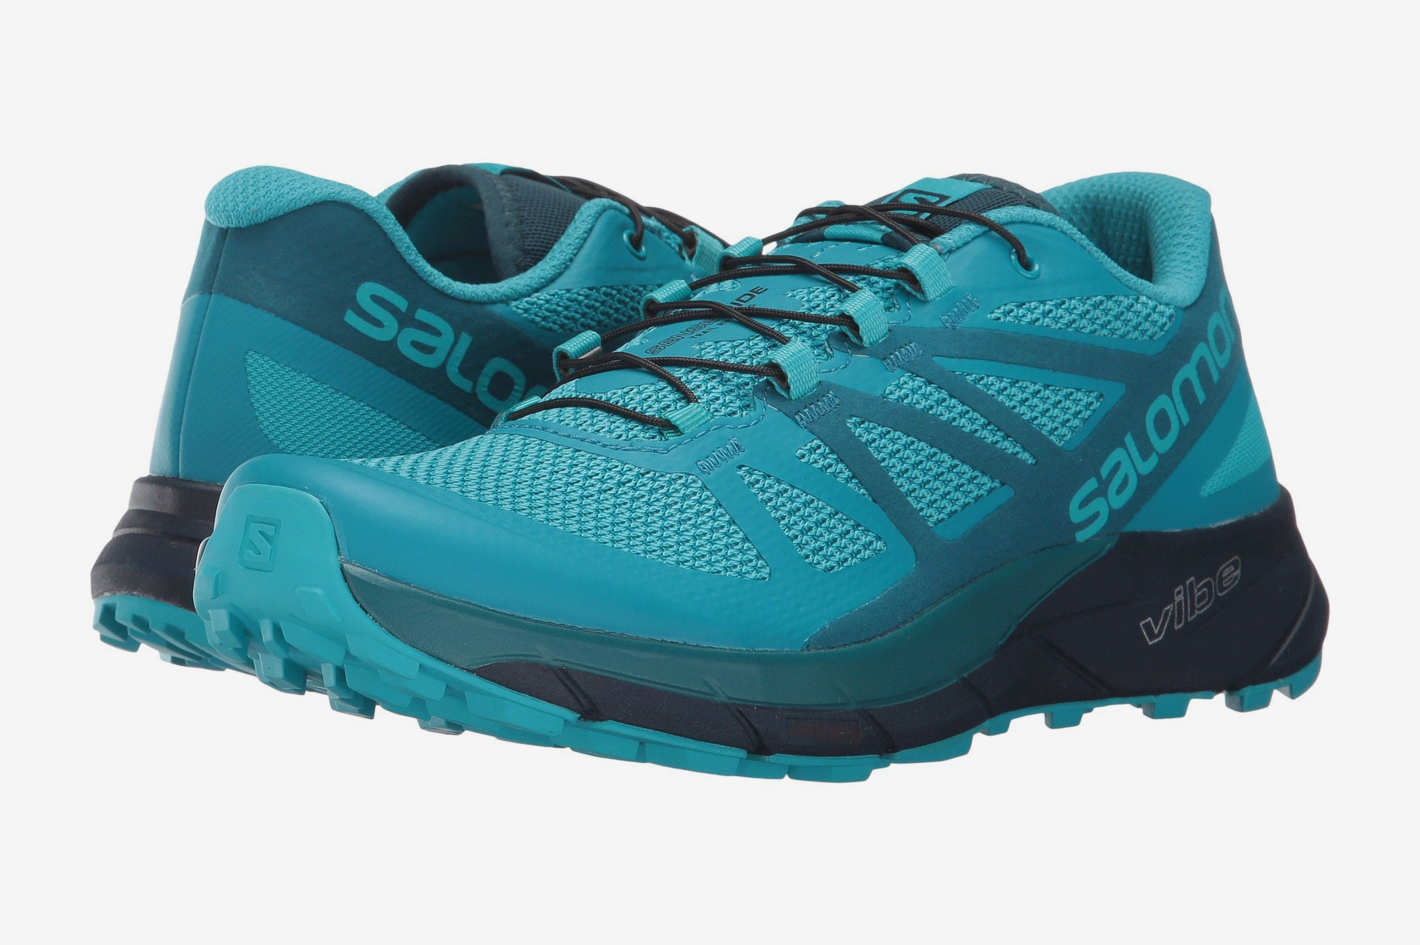 25 Best Travel Shoes for Men and Women 2018